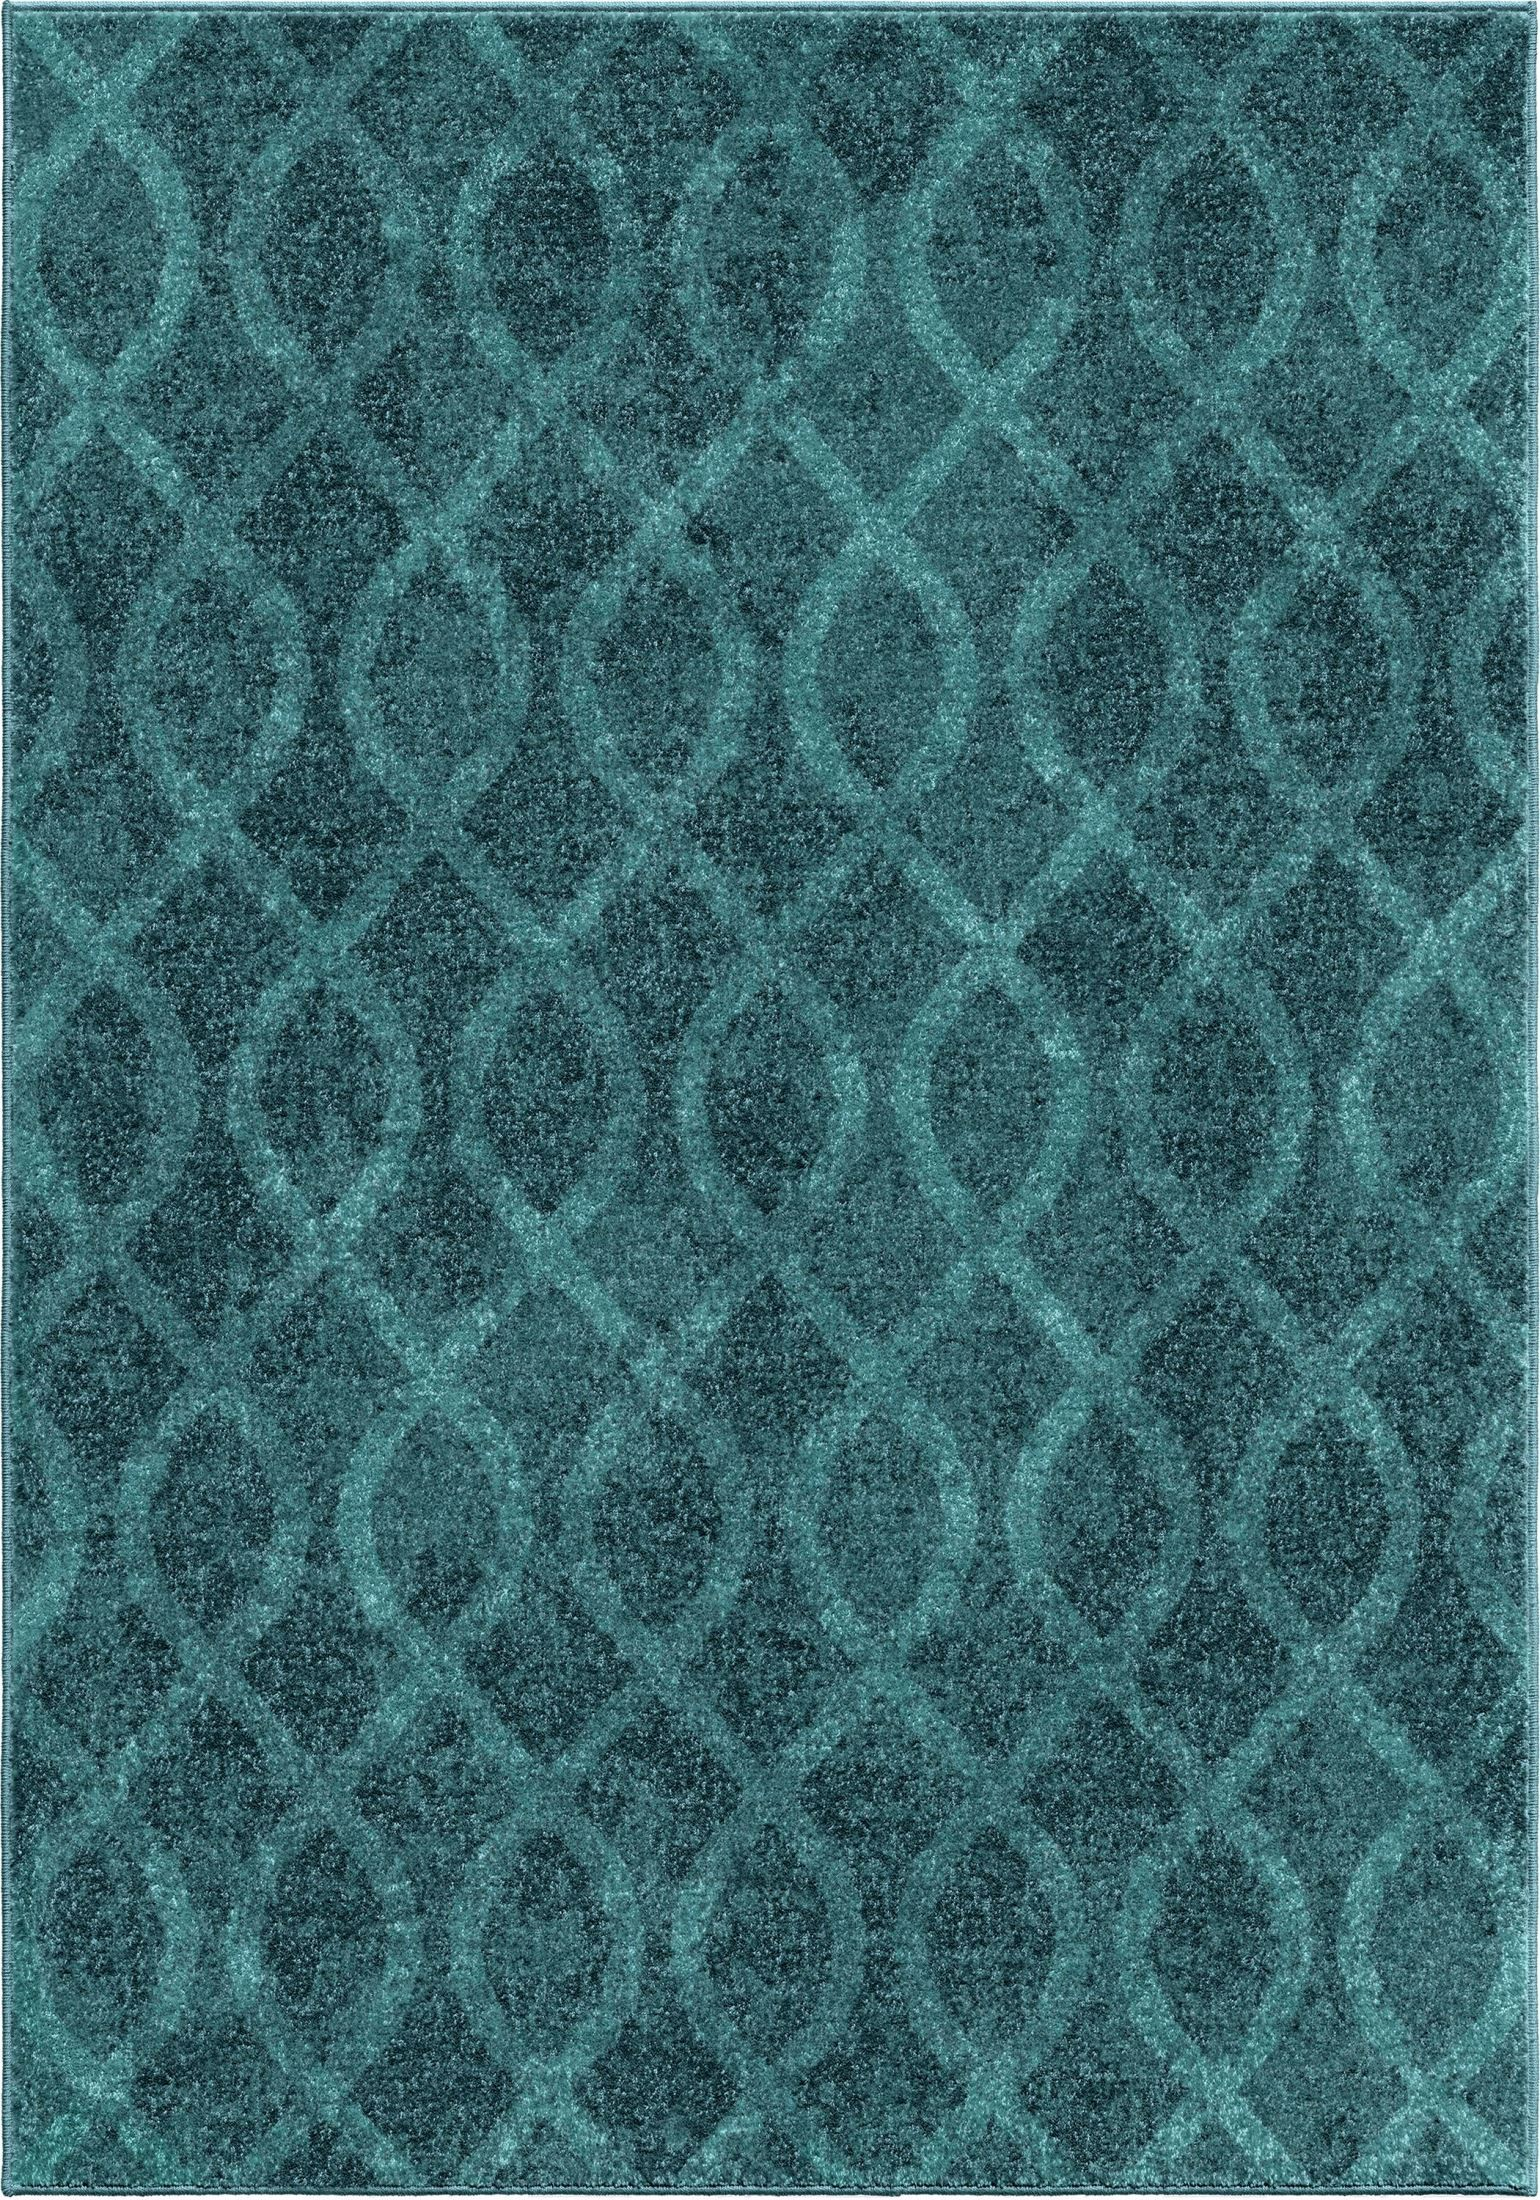 Geo Loop Aqua Large Rug From Orian 3012 7x10 Coleman